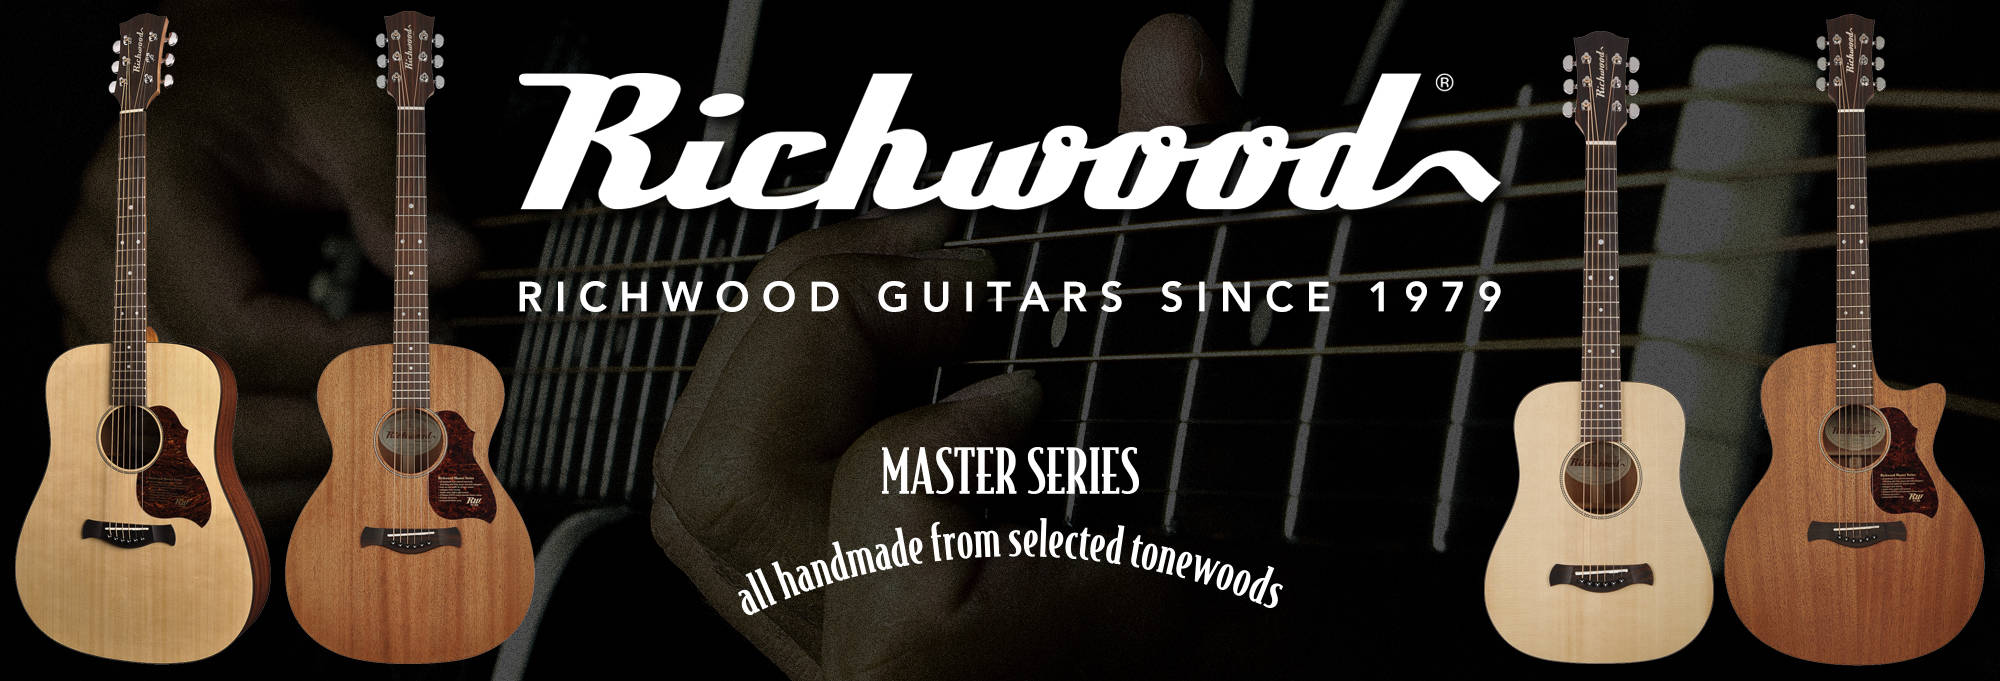 Richwood Guitars